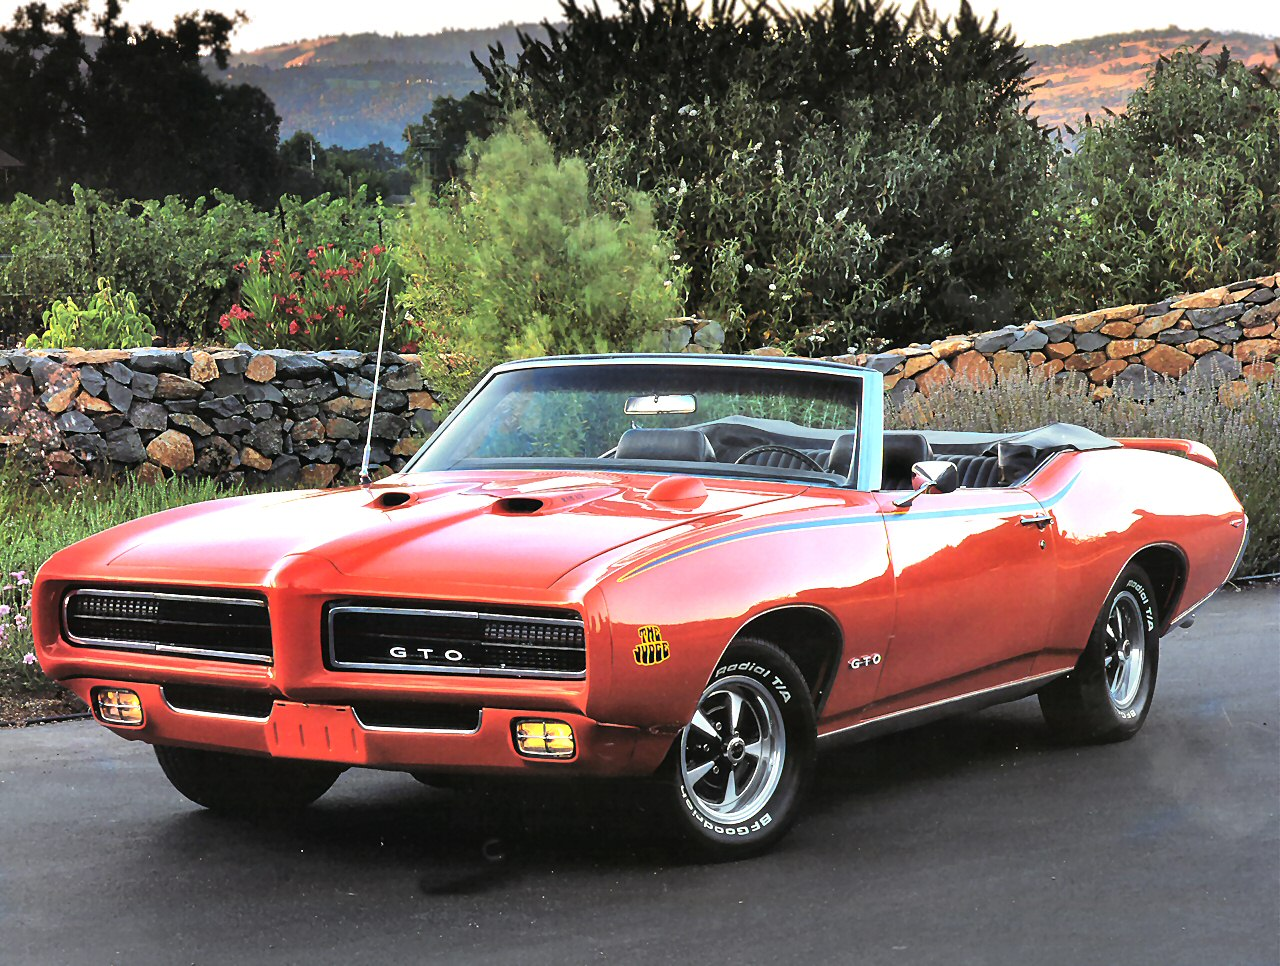 1969 Pontiac GTO The Judge Convertible Orange Fvl